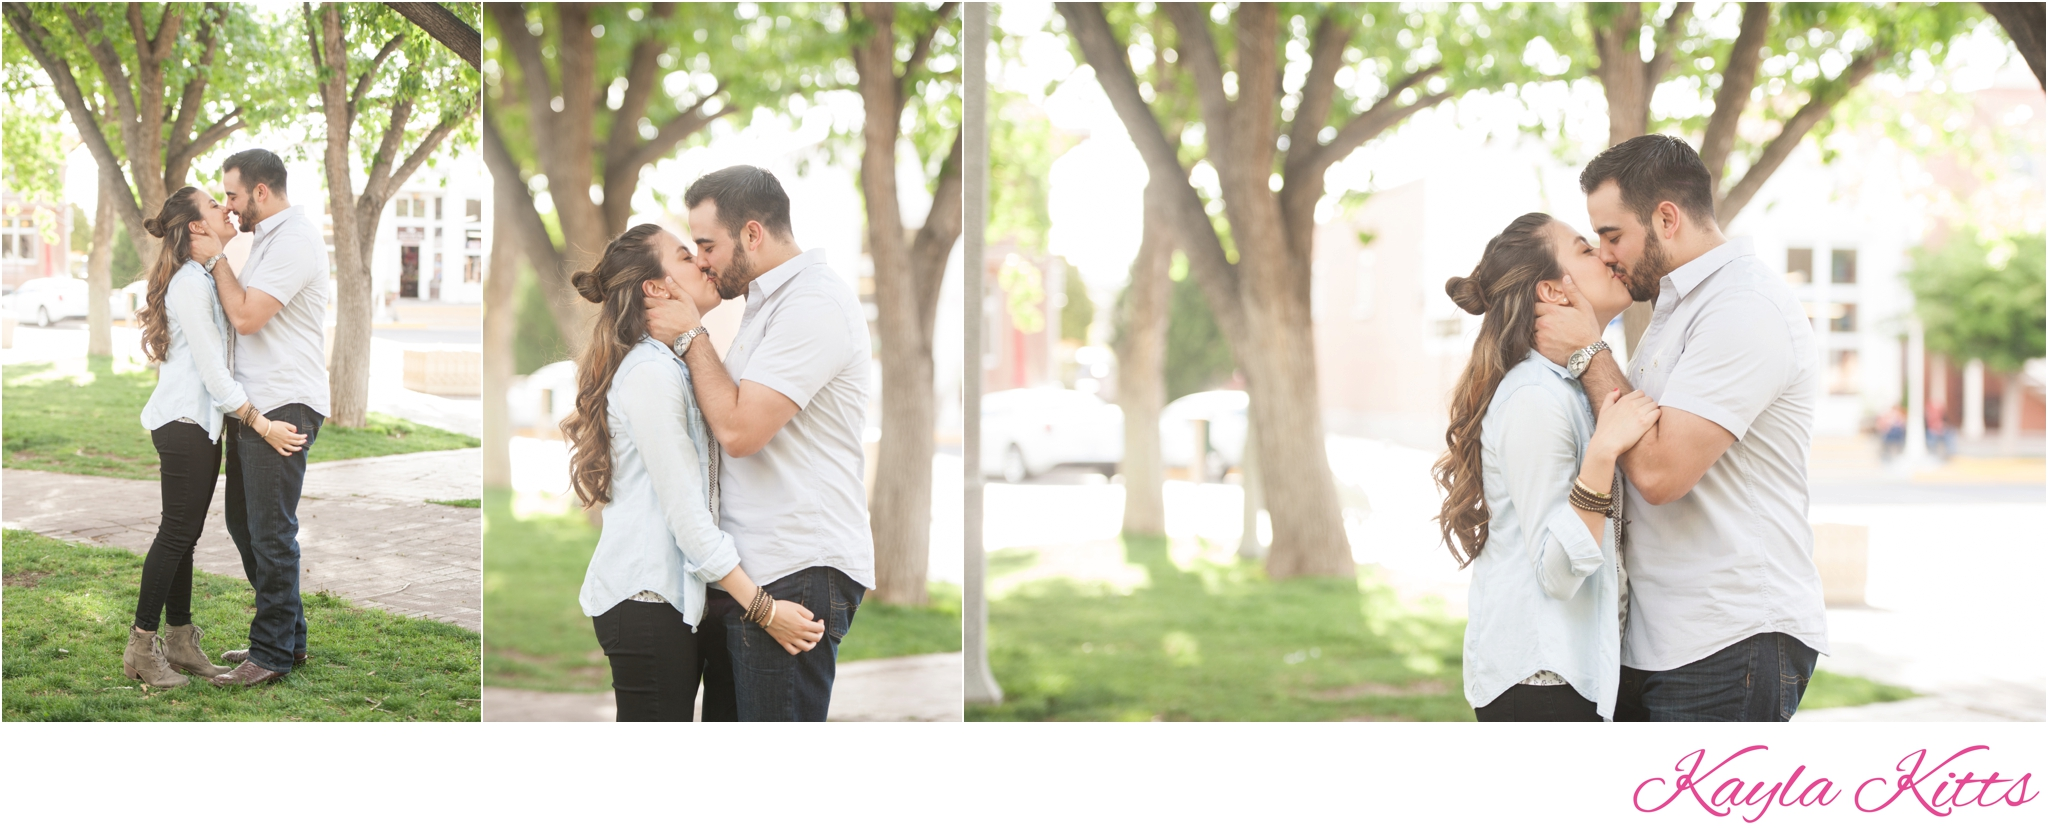 kayla kitts photography - albuquerque wedding photographer - green jeans - brewery engagement session - old town - destination wedding - cabo wedding photographer - santa fe brewery_0013.jpg